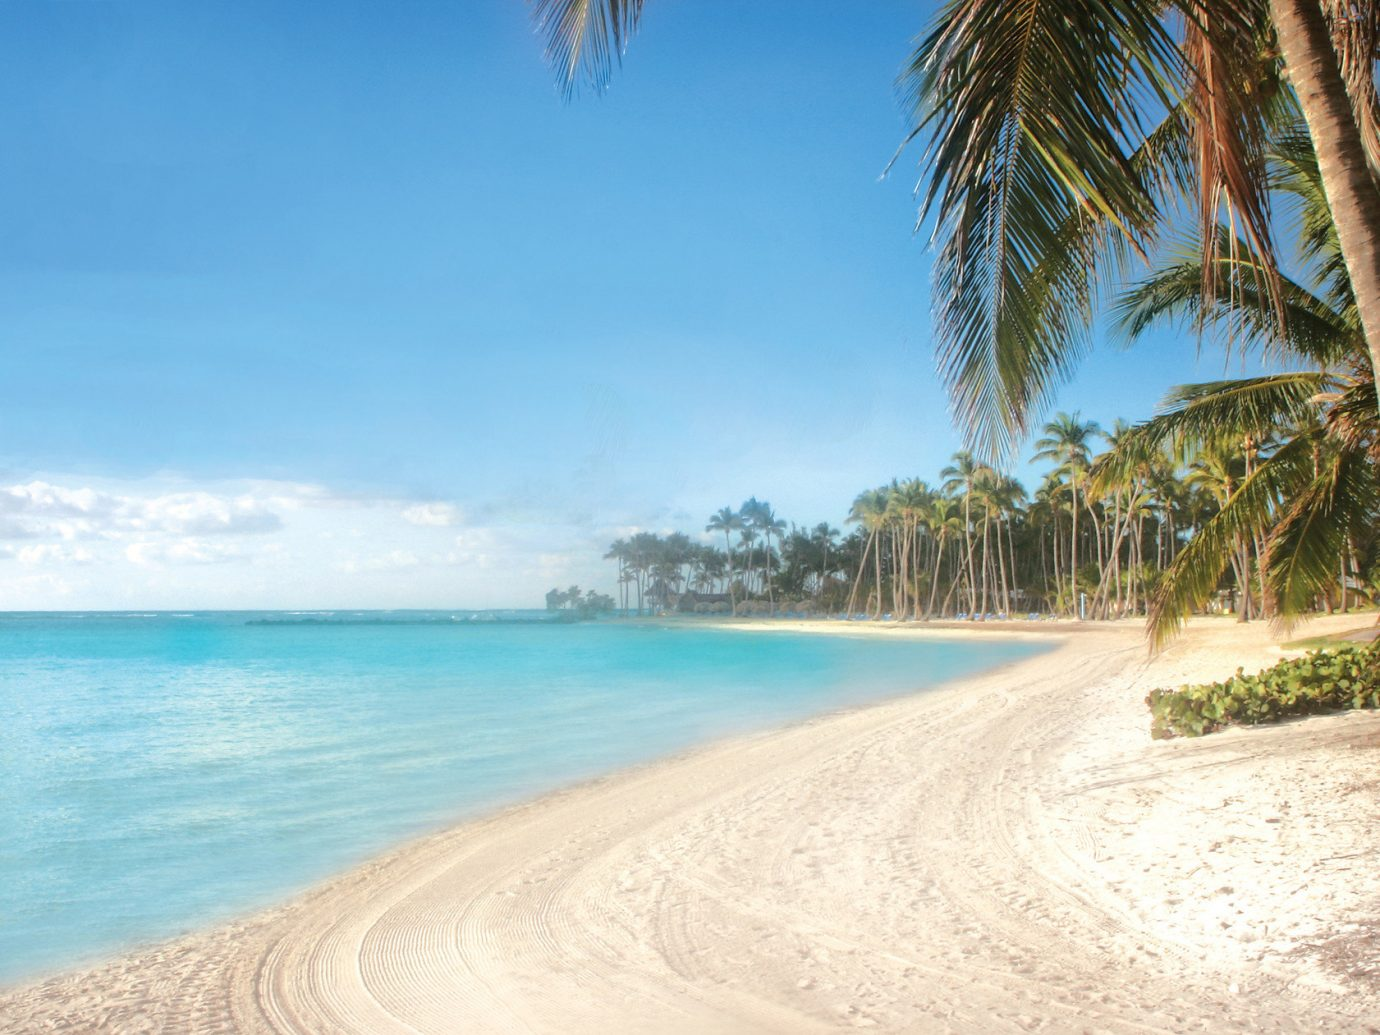 Hotels water sky outdoor tree Beach body of water Pool Sea shore palm Nature caribbean Ocean vacation Coast sand arecales tropics bay cape Lagoon Island swimming sandy lined